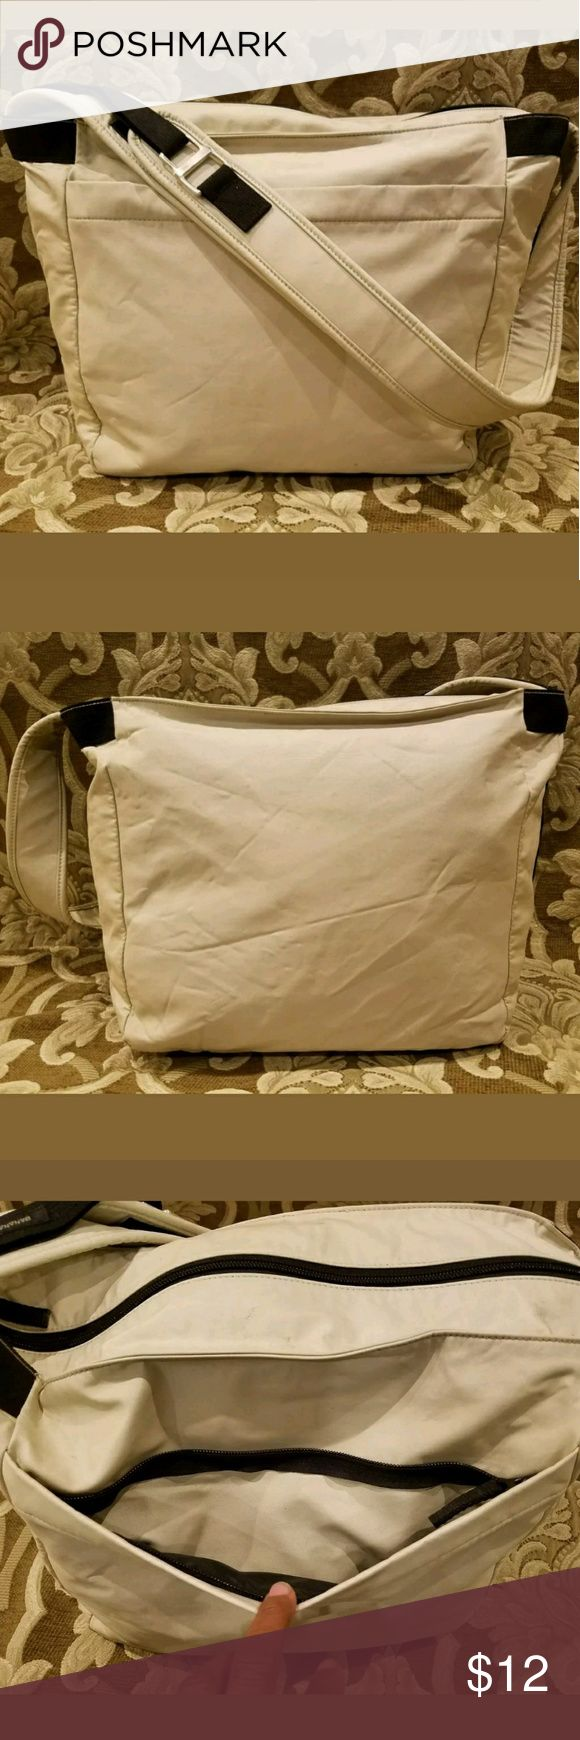 """BANANA REPUBLIC unisex nylon tote laptop/book bag Some scattered surface wear/scuffs from use. May be able to wash out with oxyclean. Enlarge pics for examples + details. No padding.  very good condition. 16.5 x 6.5 x 11.5 with adjustable 12"""" strap drop Banana Republic Bags Laptop Bags"""